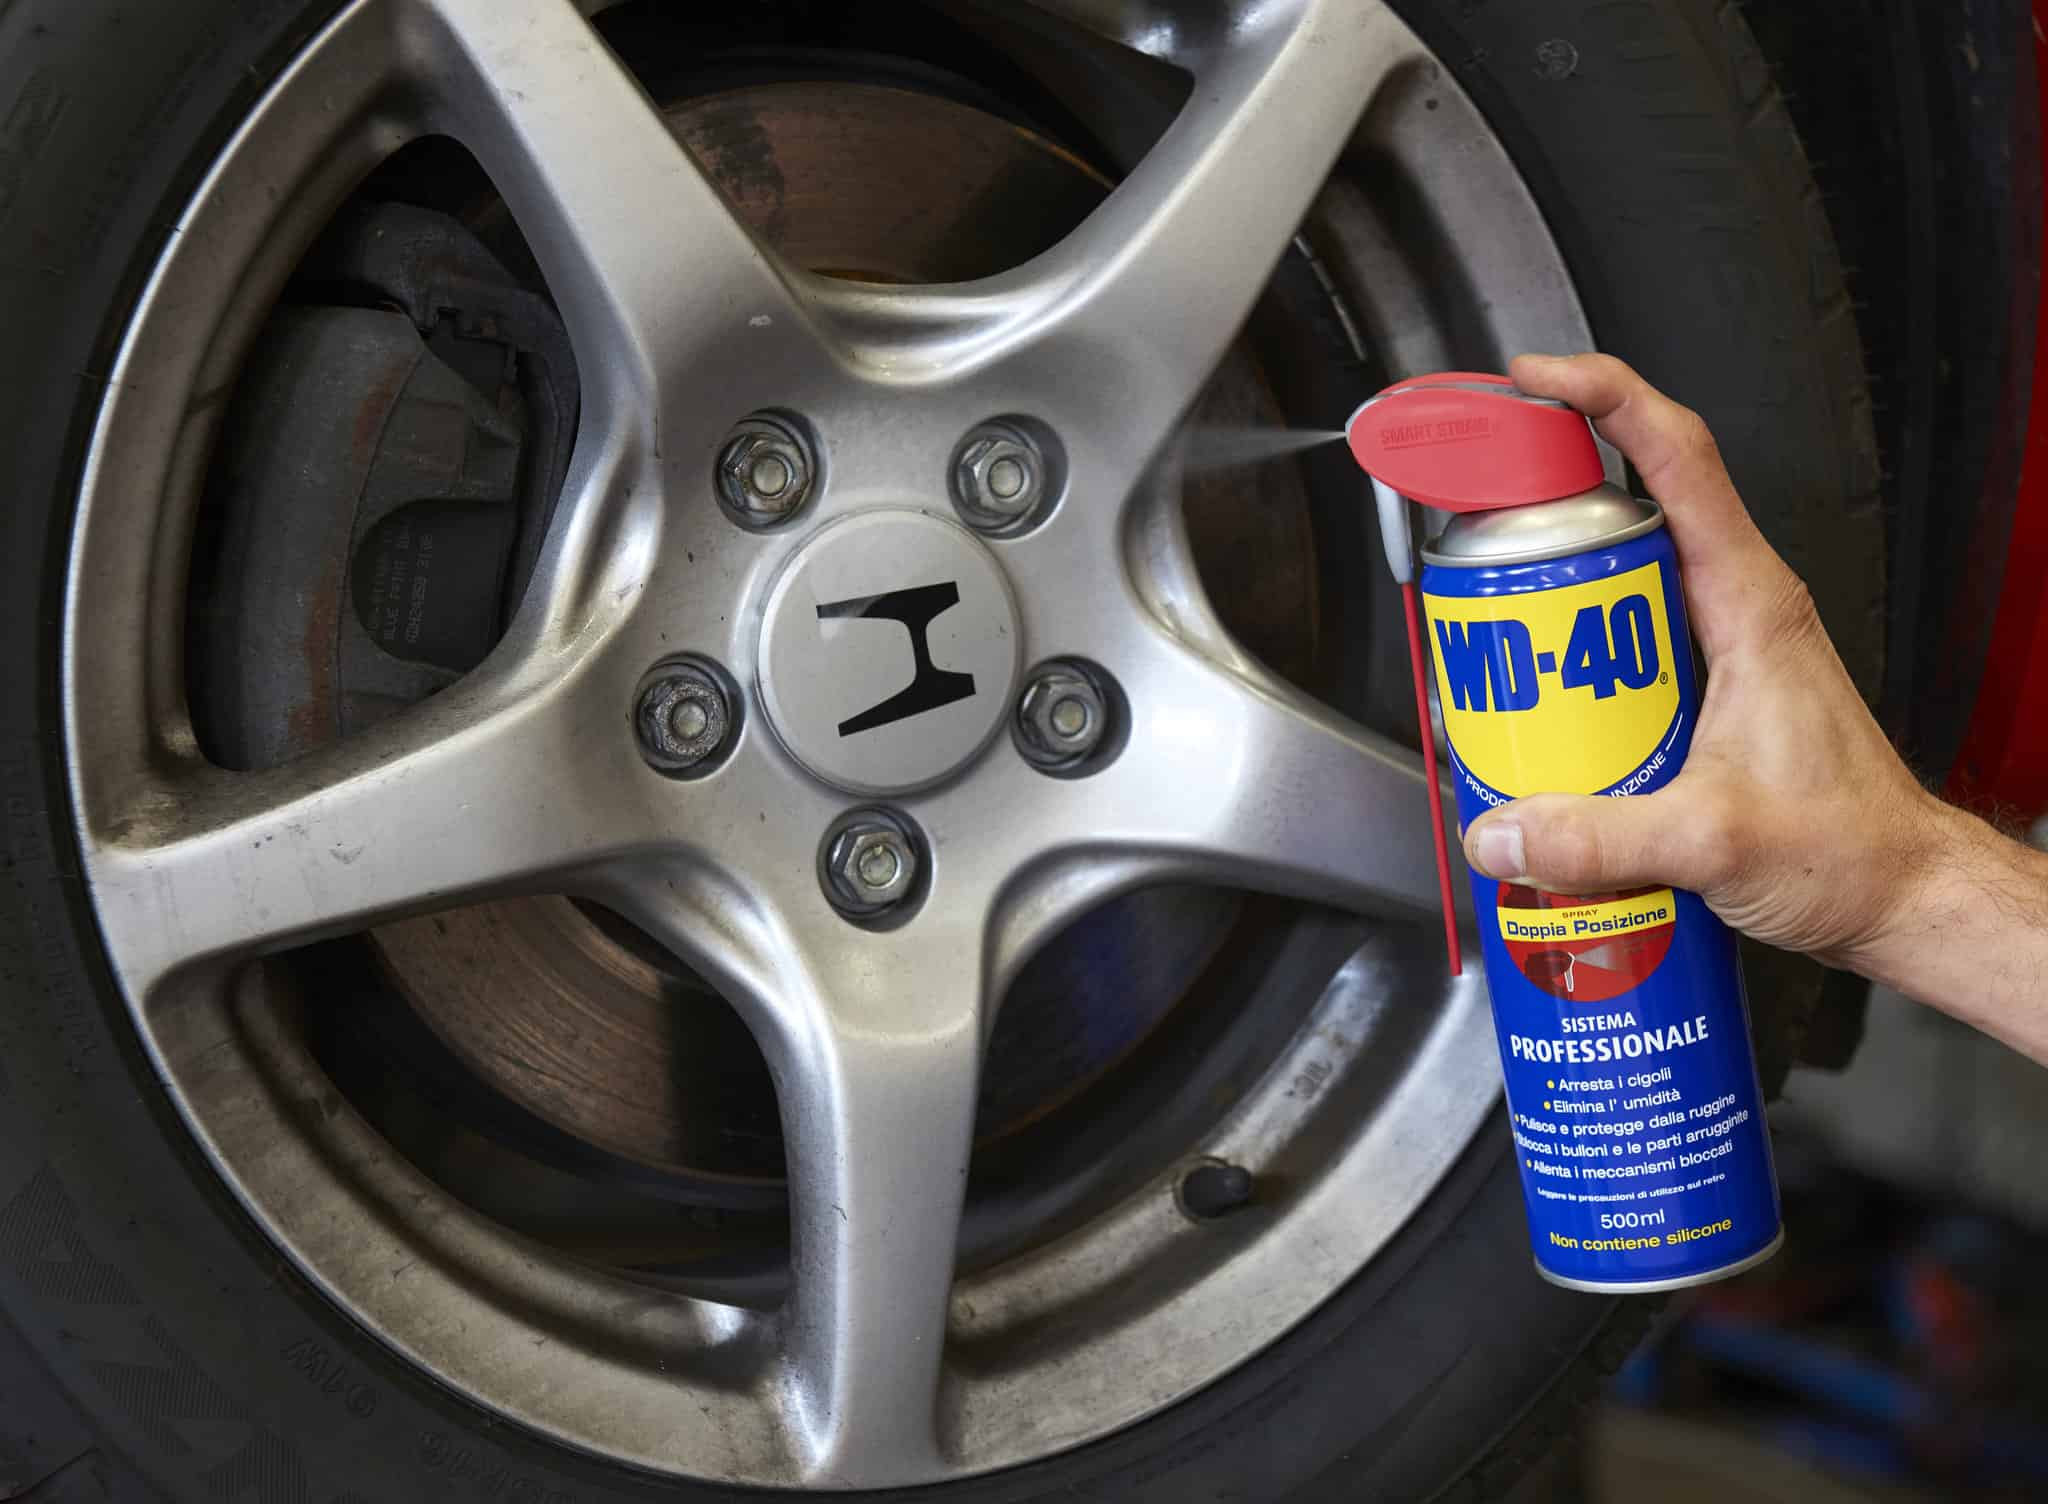 Clean Alloy Wheels and rims with WD-40